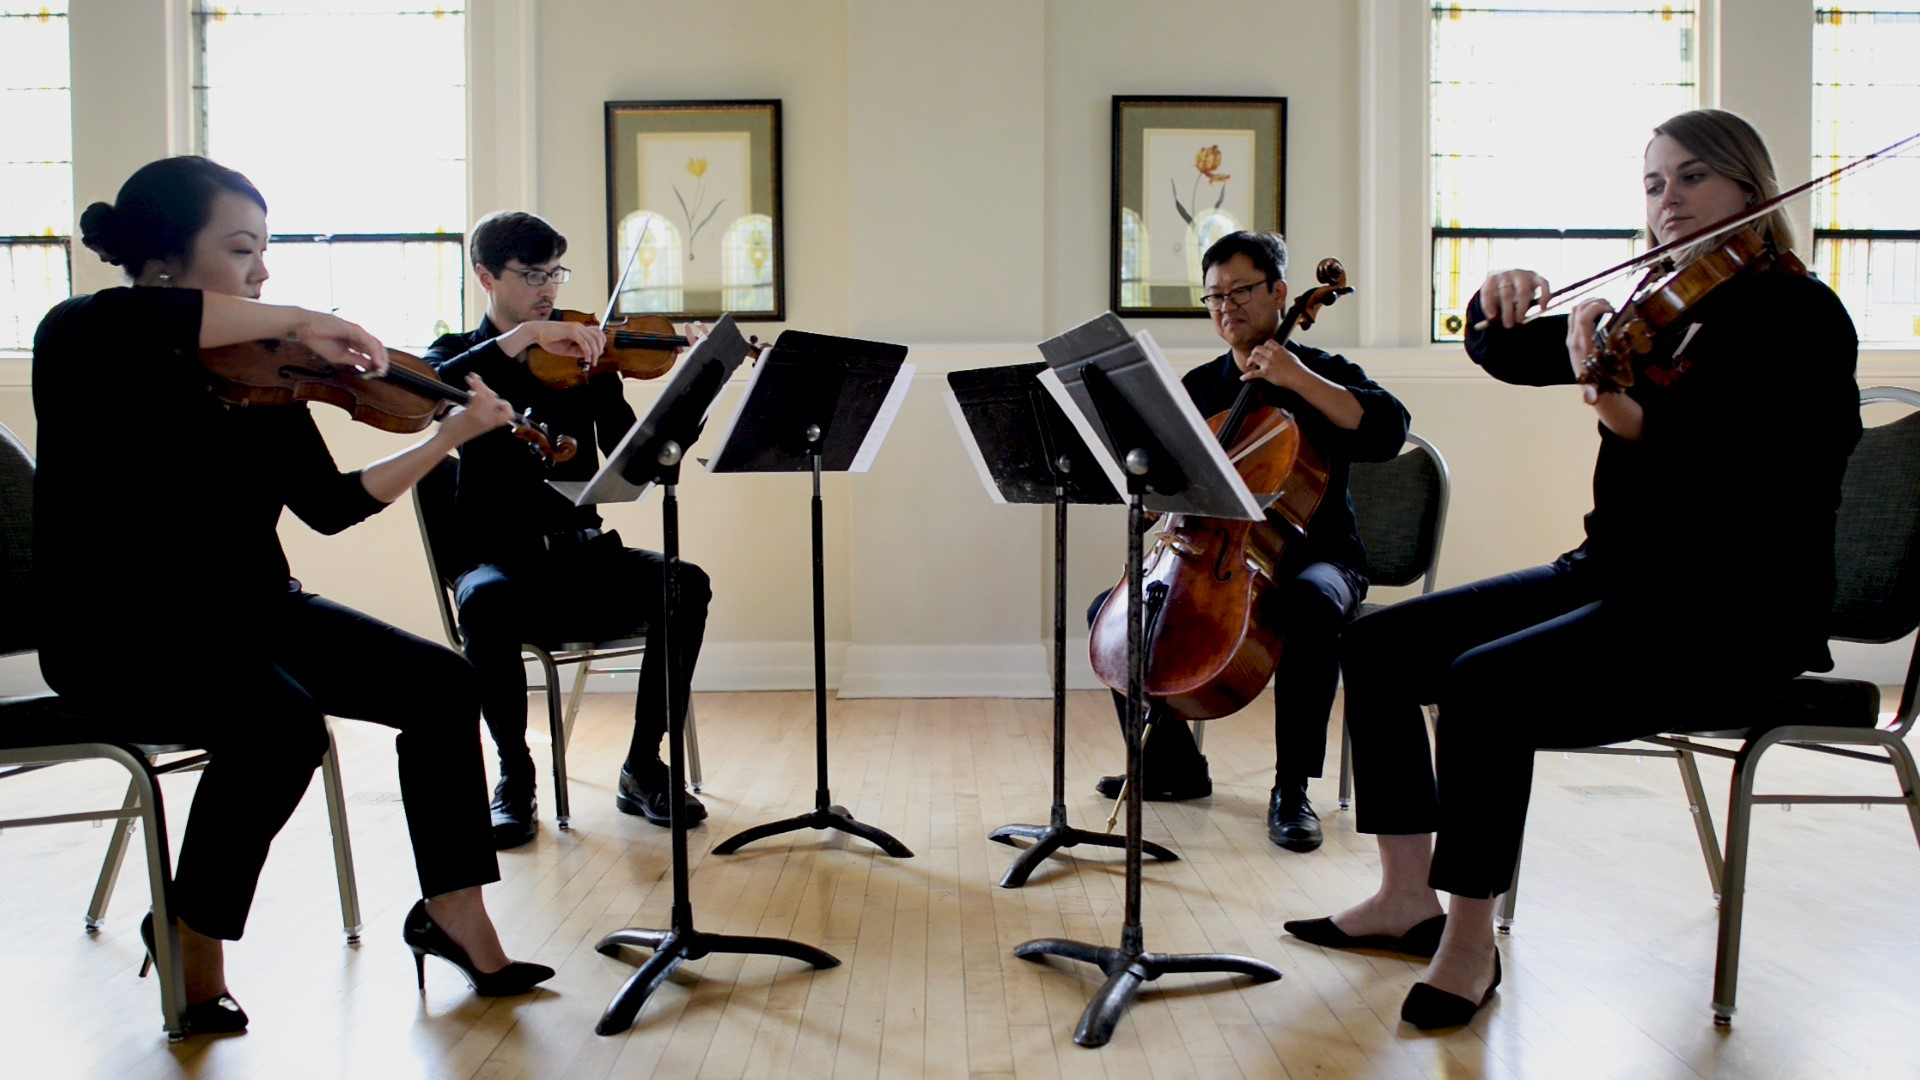 3rd Tuesday Lunchtime Concert Series: Boulder Phil String Quartet & The Schiff Dance Collective